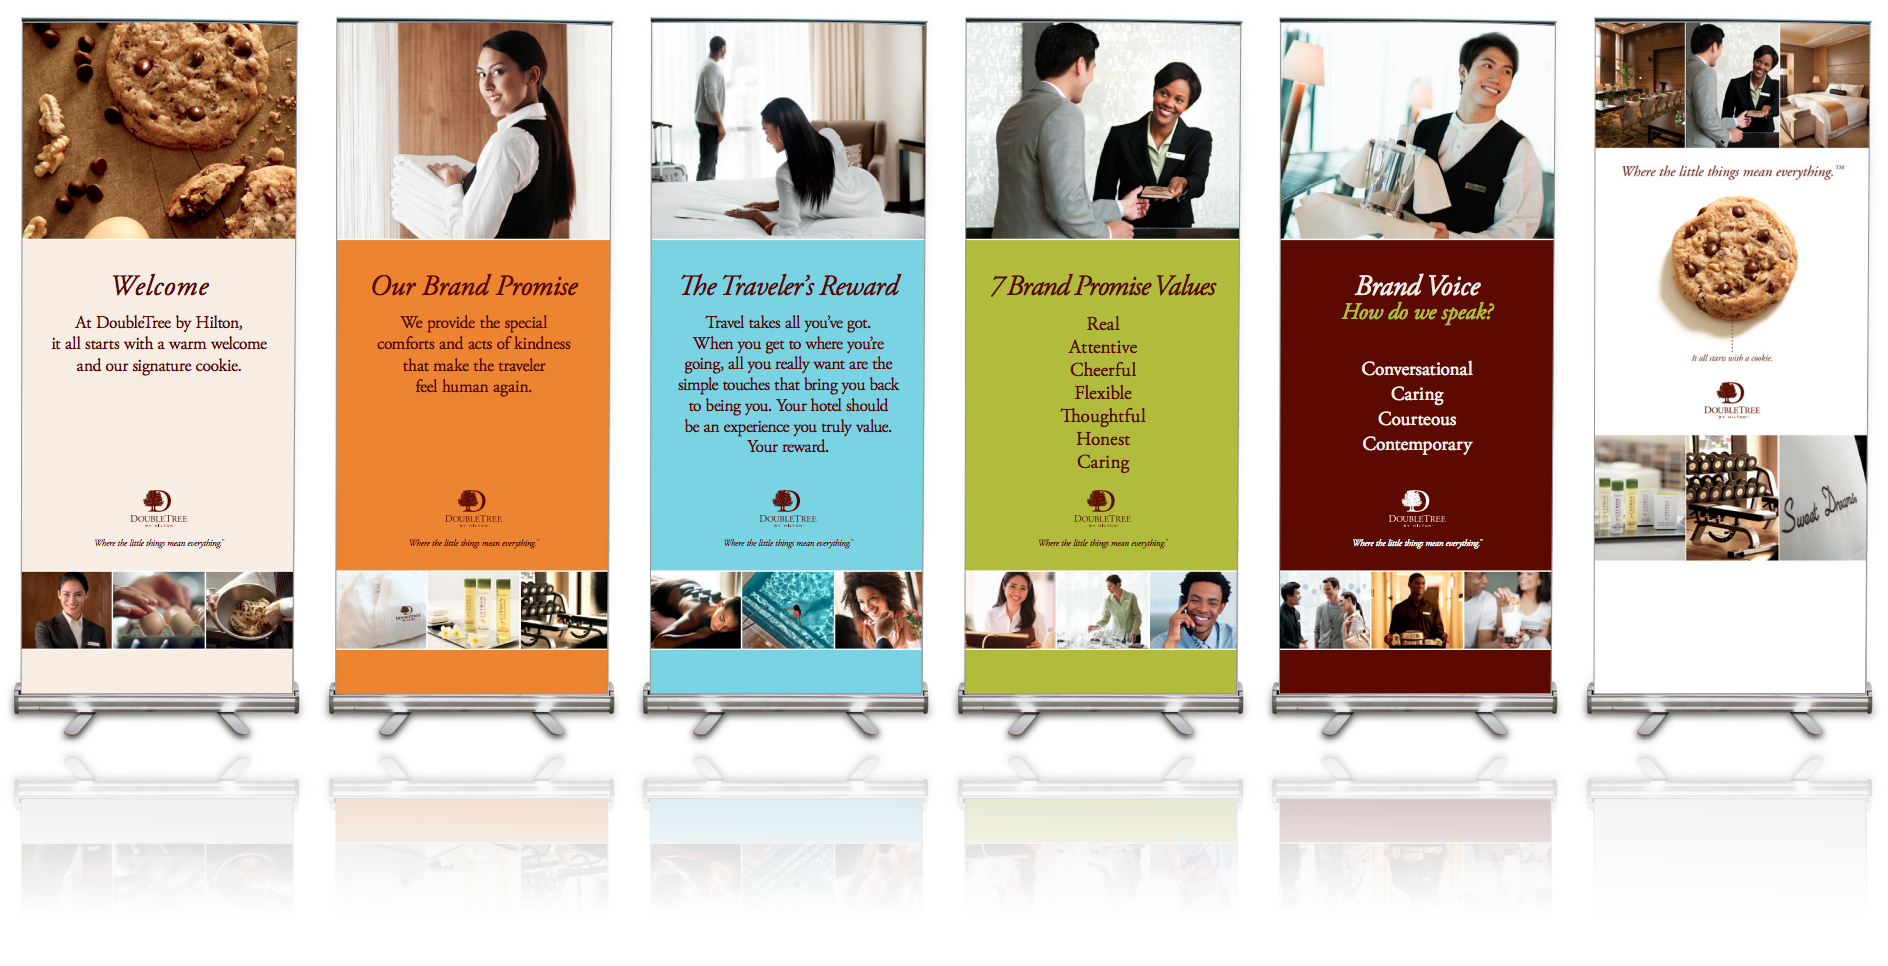 Hotel Welcome Banners Kid School Banners